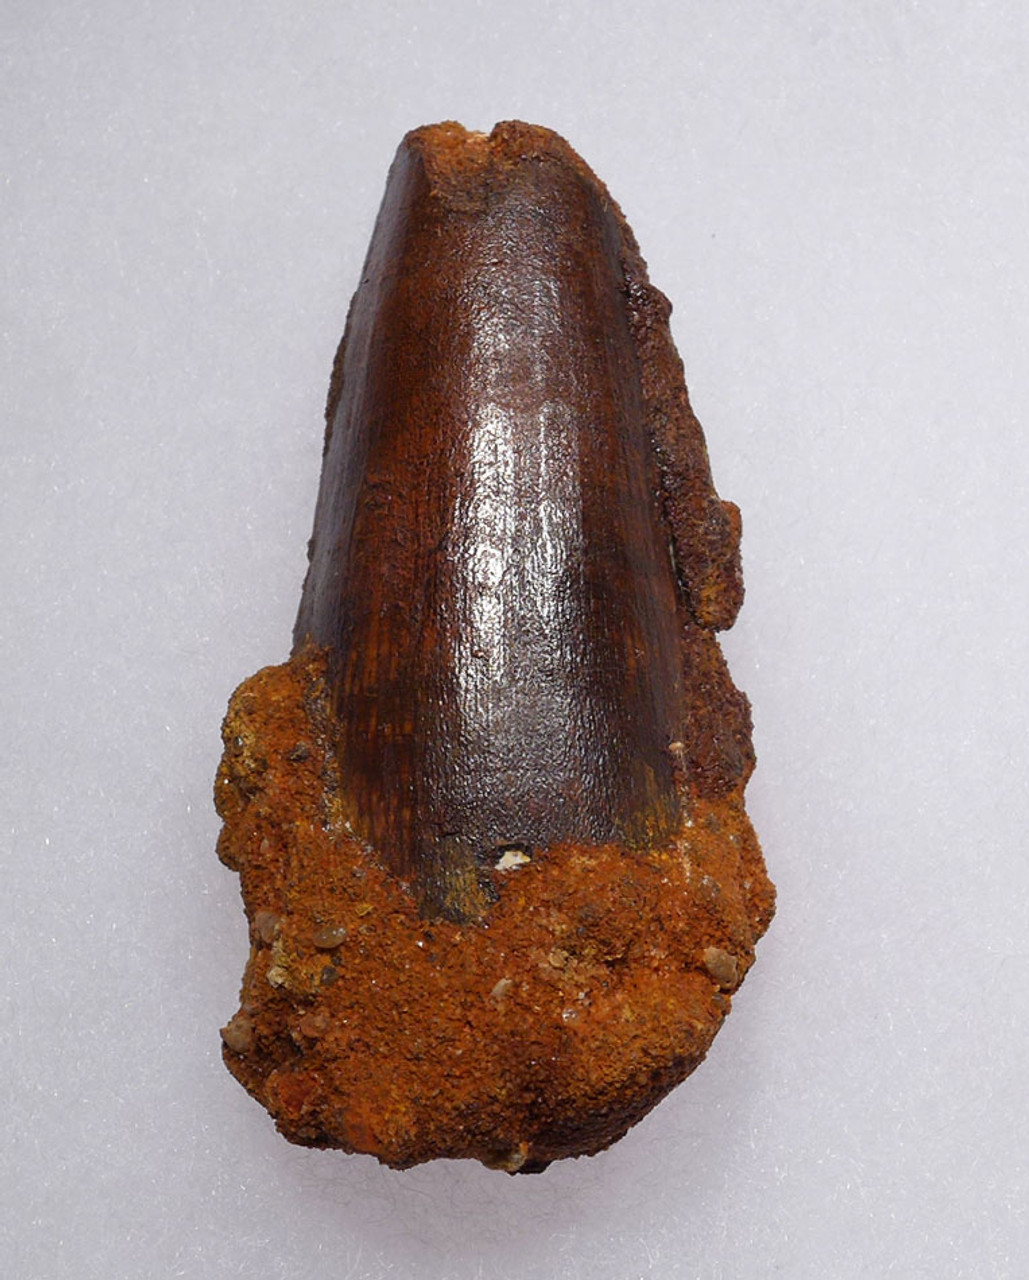 LARGE 2.5 INCH SPINOSAURUS DINOSAUR FOSSIL TOOTH WITH FEEDING WEAR *DT5-431